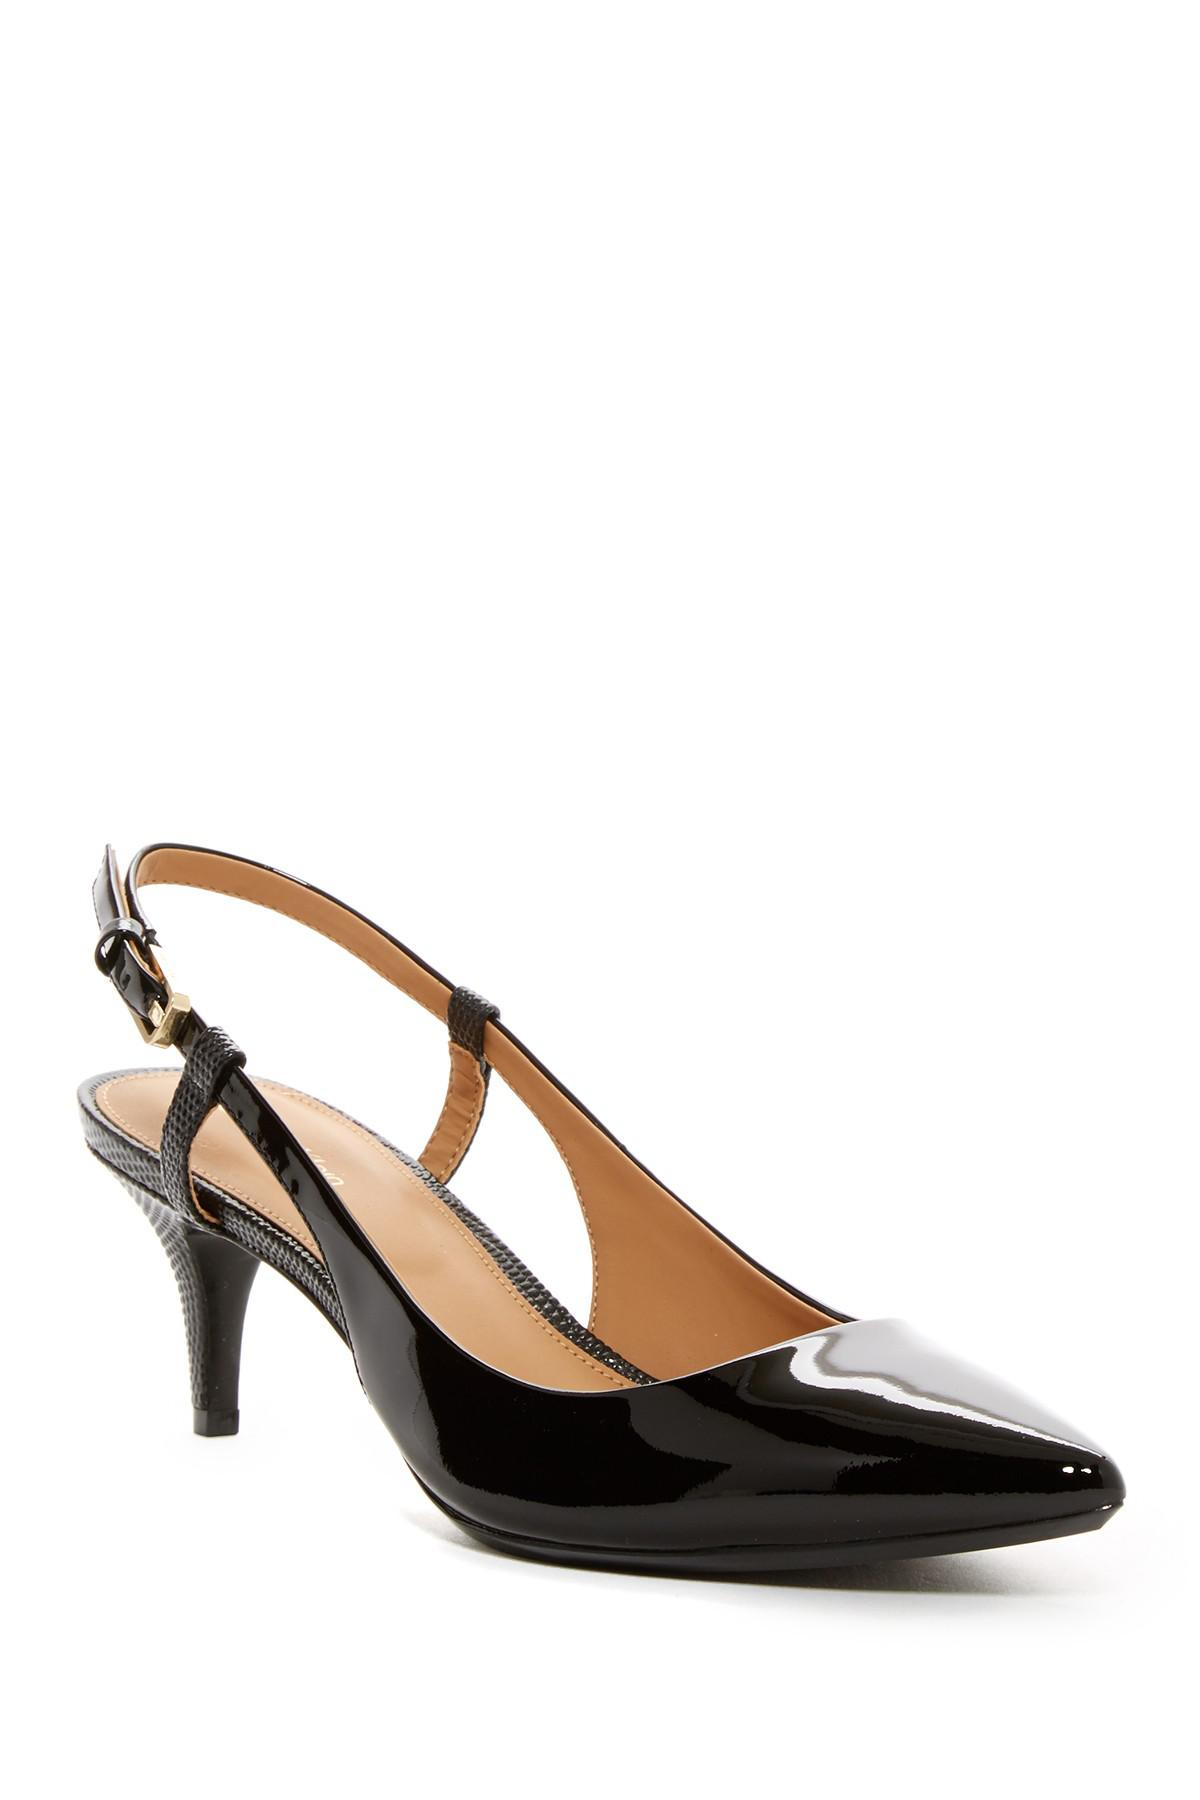 6165e36b943 Lyst - Calvin Klein Patsy Slingback Pointed Toe Pump in Black